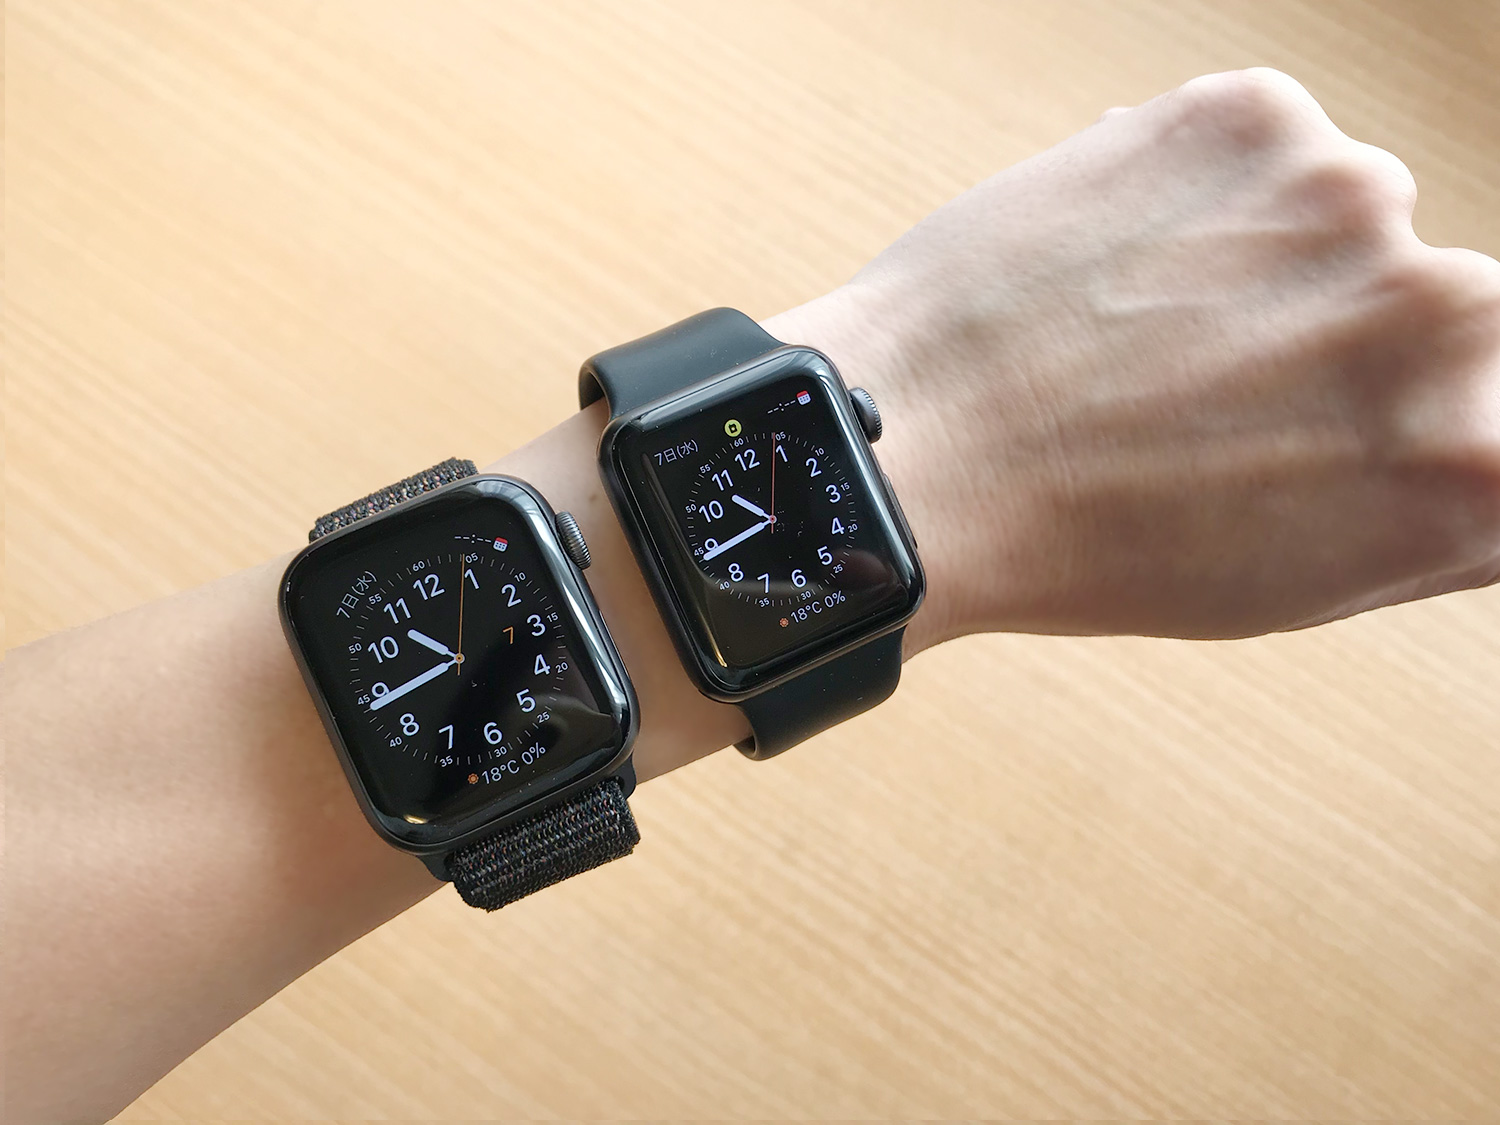 Apple Watch Series 4(40mm)とSeries 3(38mm)のサイズ比較